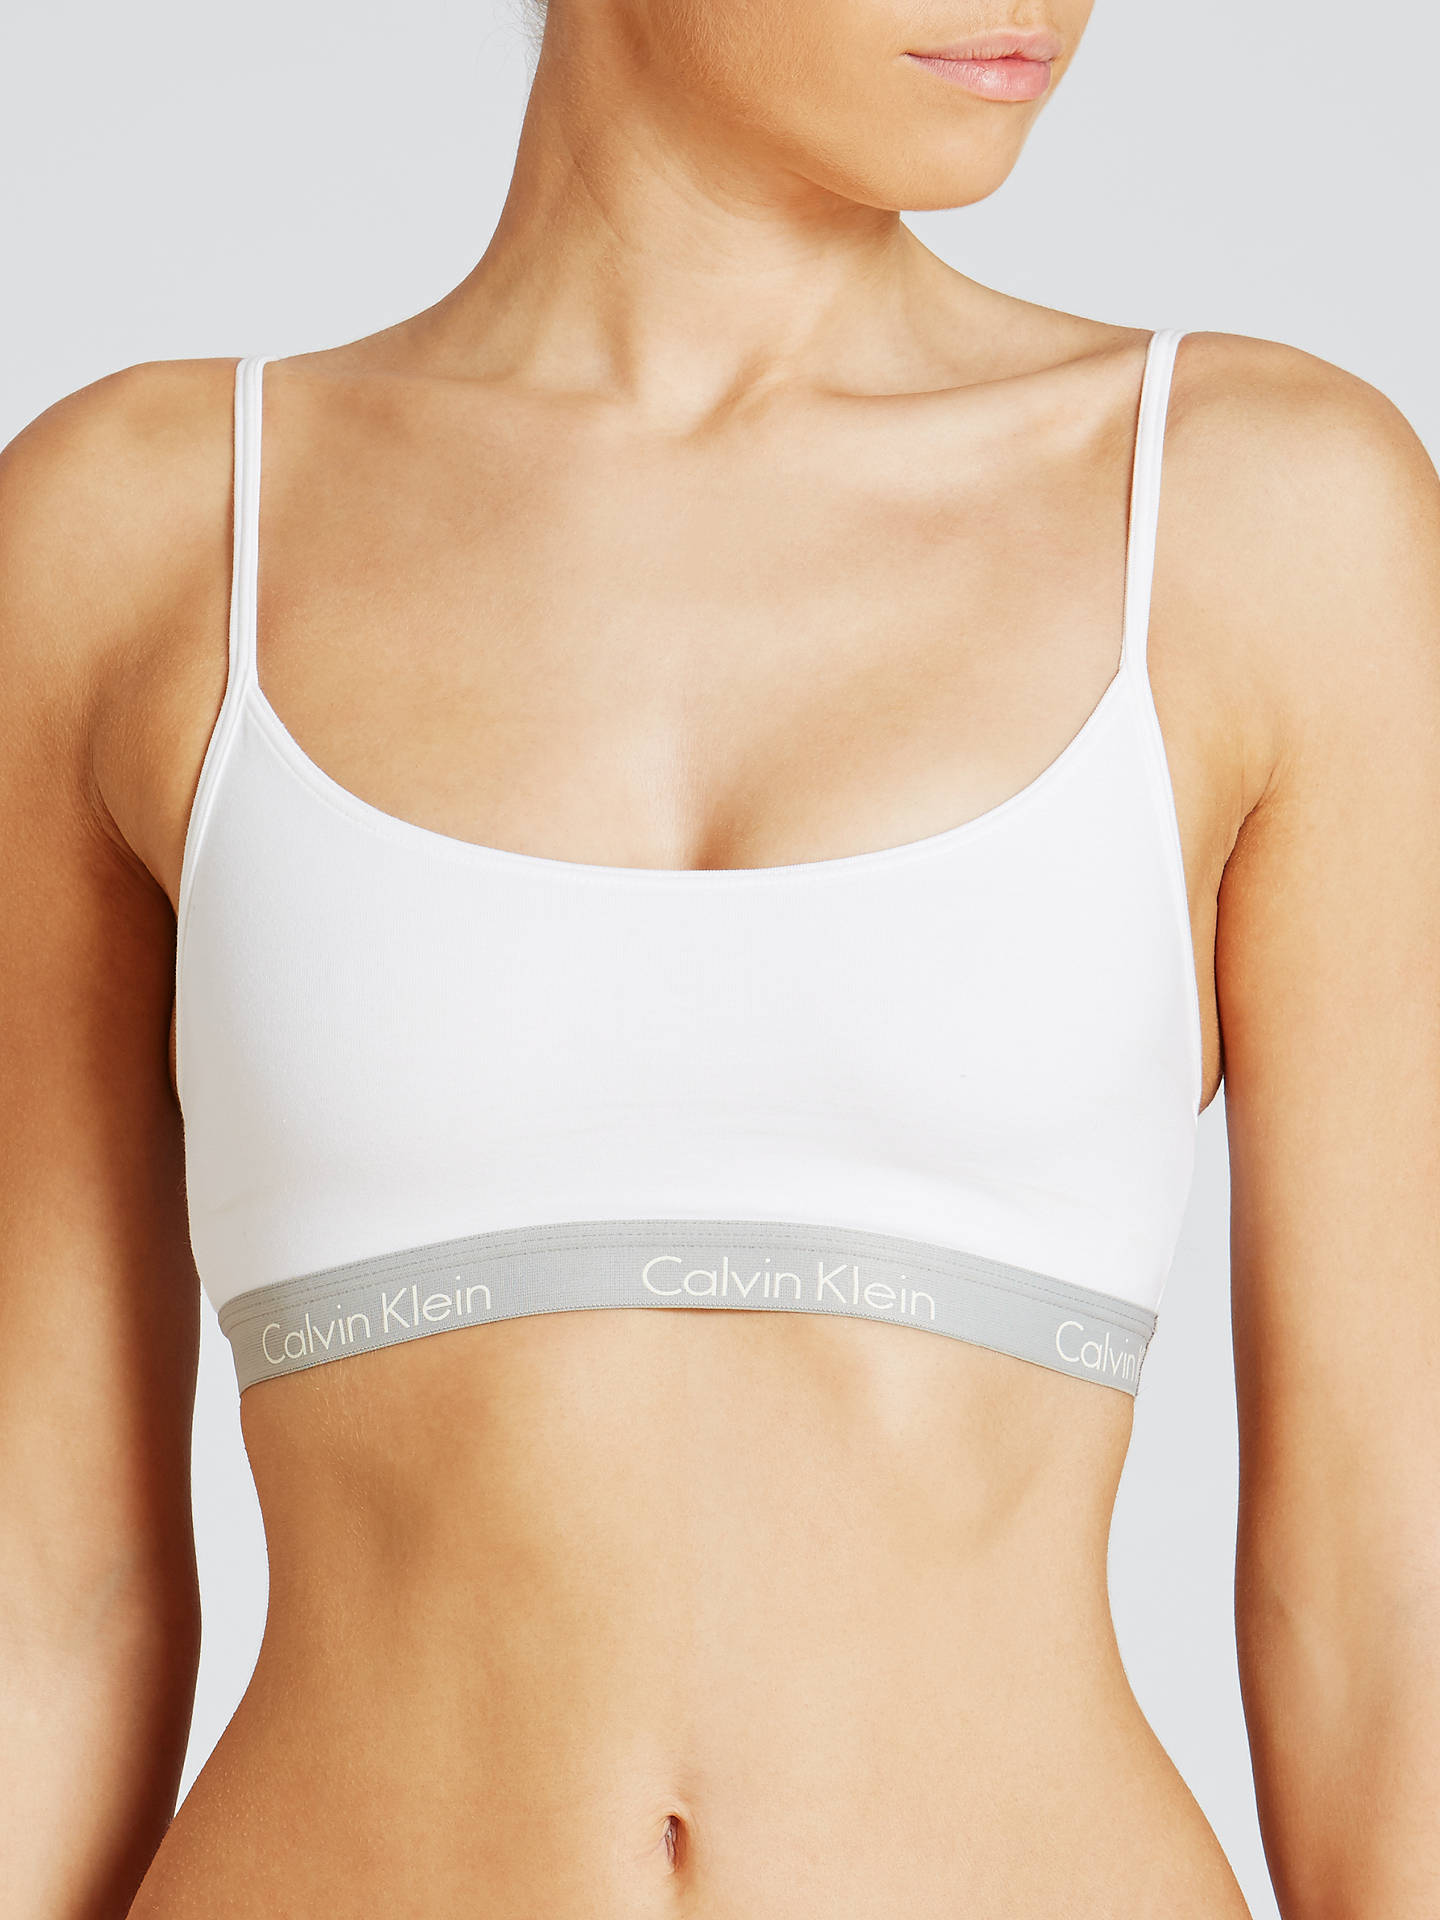 BuyCalvin Klein Underwear CK One Cotton Bralette, White, S Online at  johnlewis.com ... e9c1545e33b5